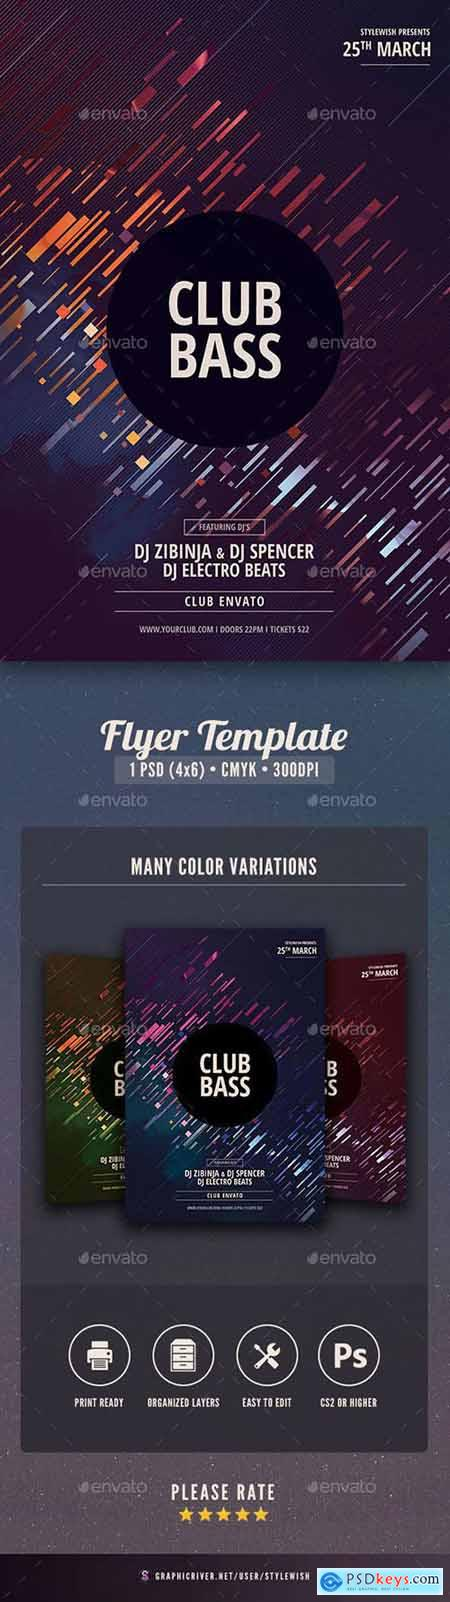 Graphicriver Club Bass Flyer